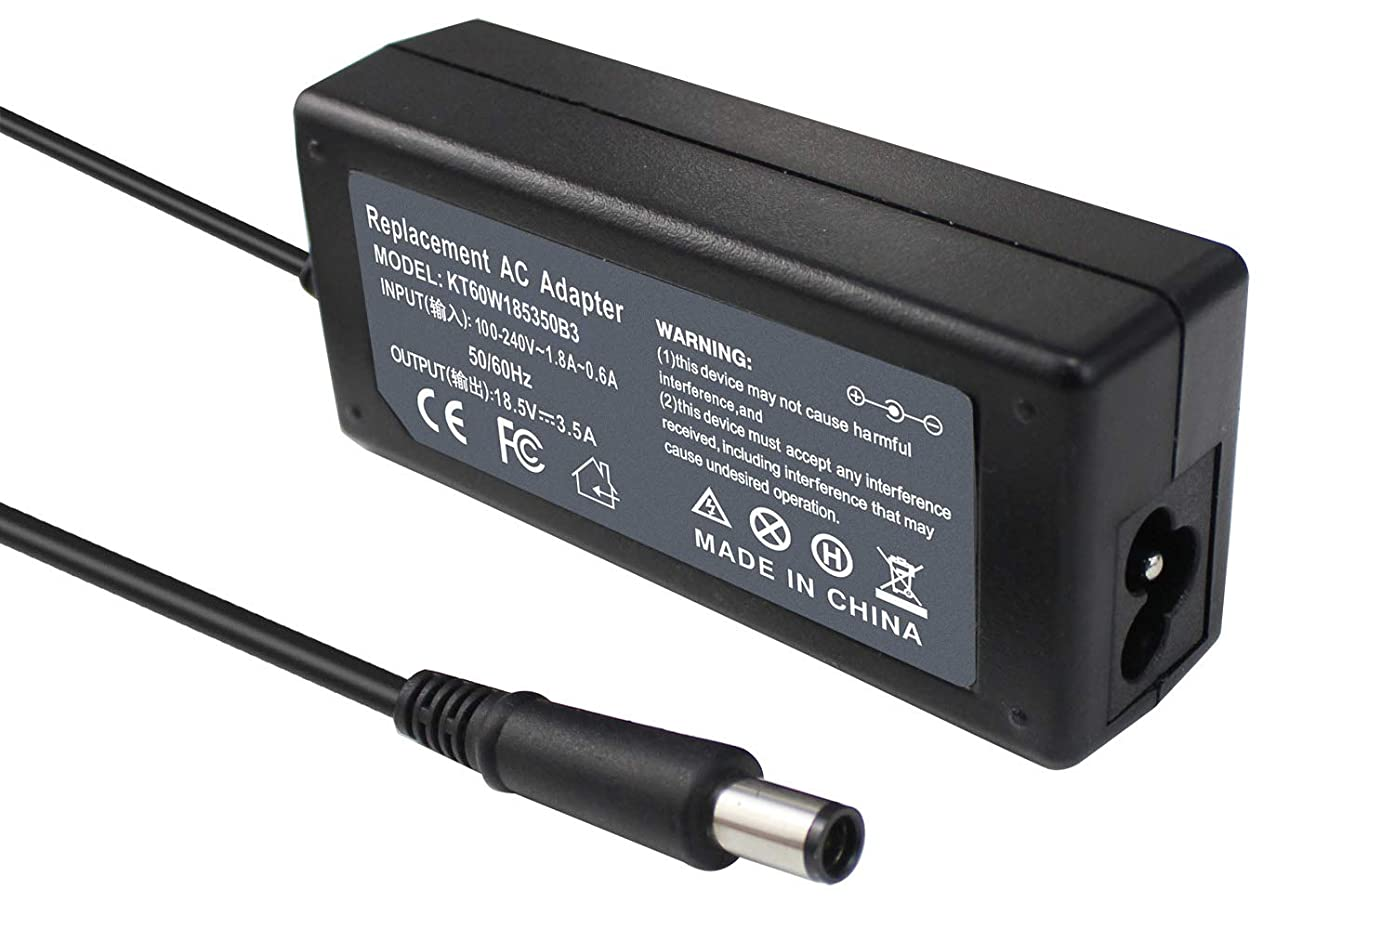 BE·SELL 18.5V 3.5A AC Laptop Adapter Charger for HP Pavilion G6 G7 G4 DV4 DV5 DM4 DM4-1173CM4 M6; HP 2000-2A20NR 2000-2B09WM 2000-2B19WM 2000-2B29WM 693711-001 677774-001 Power Supply Cord